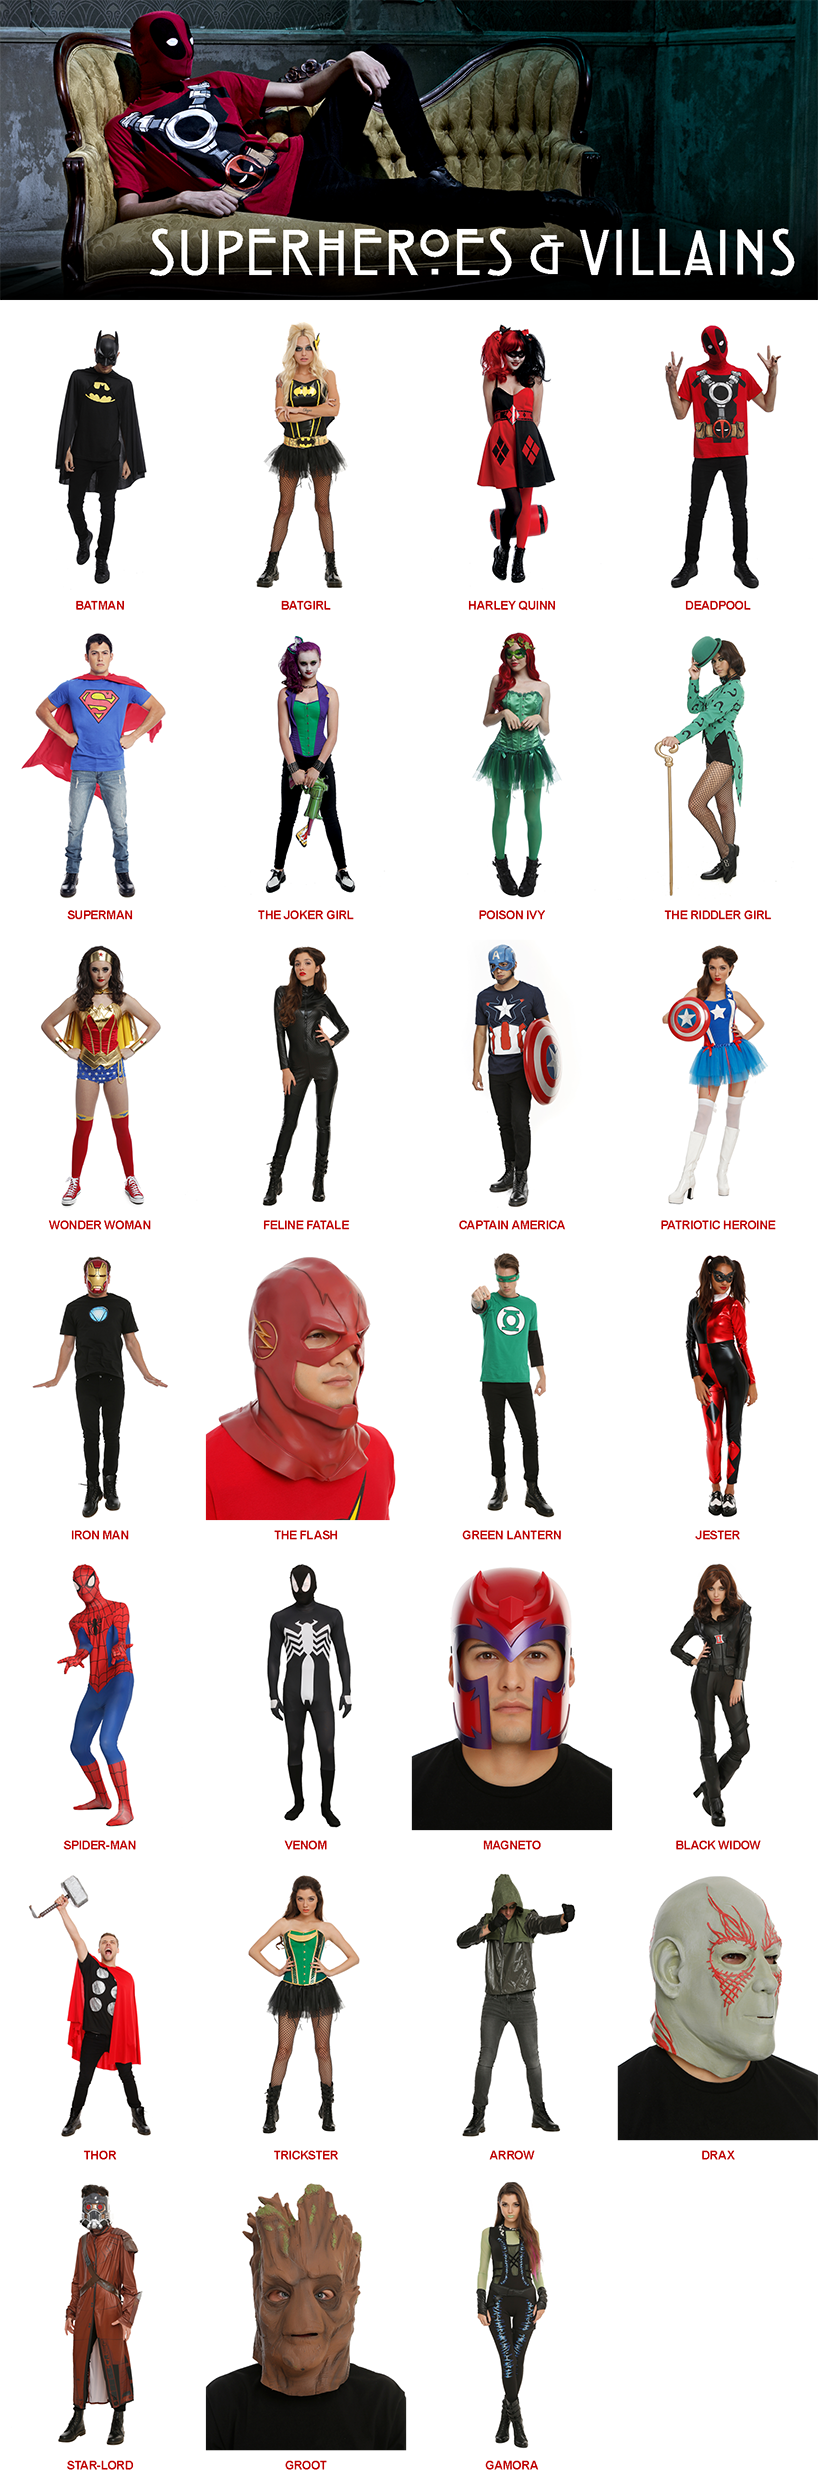 Superhero Halloween Costumes: Iron Man, Wonder Woman | Hot Topic ... svg freeuse library